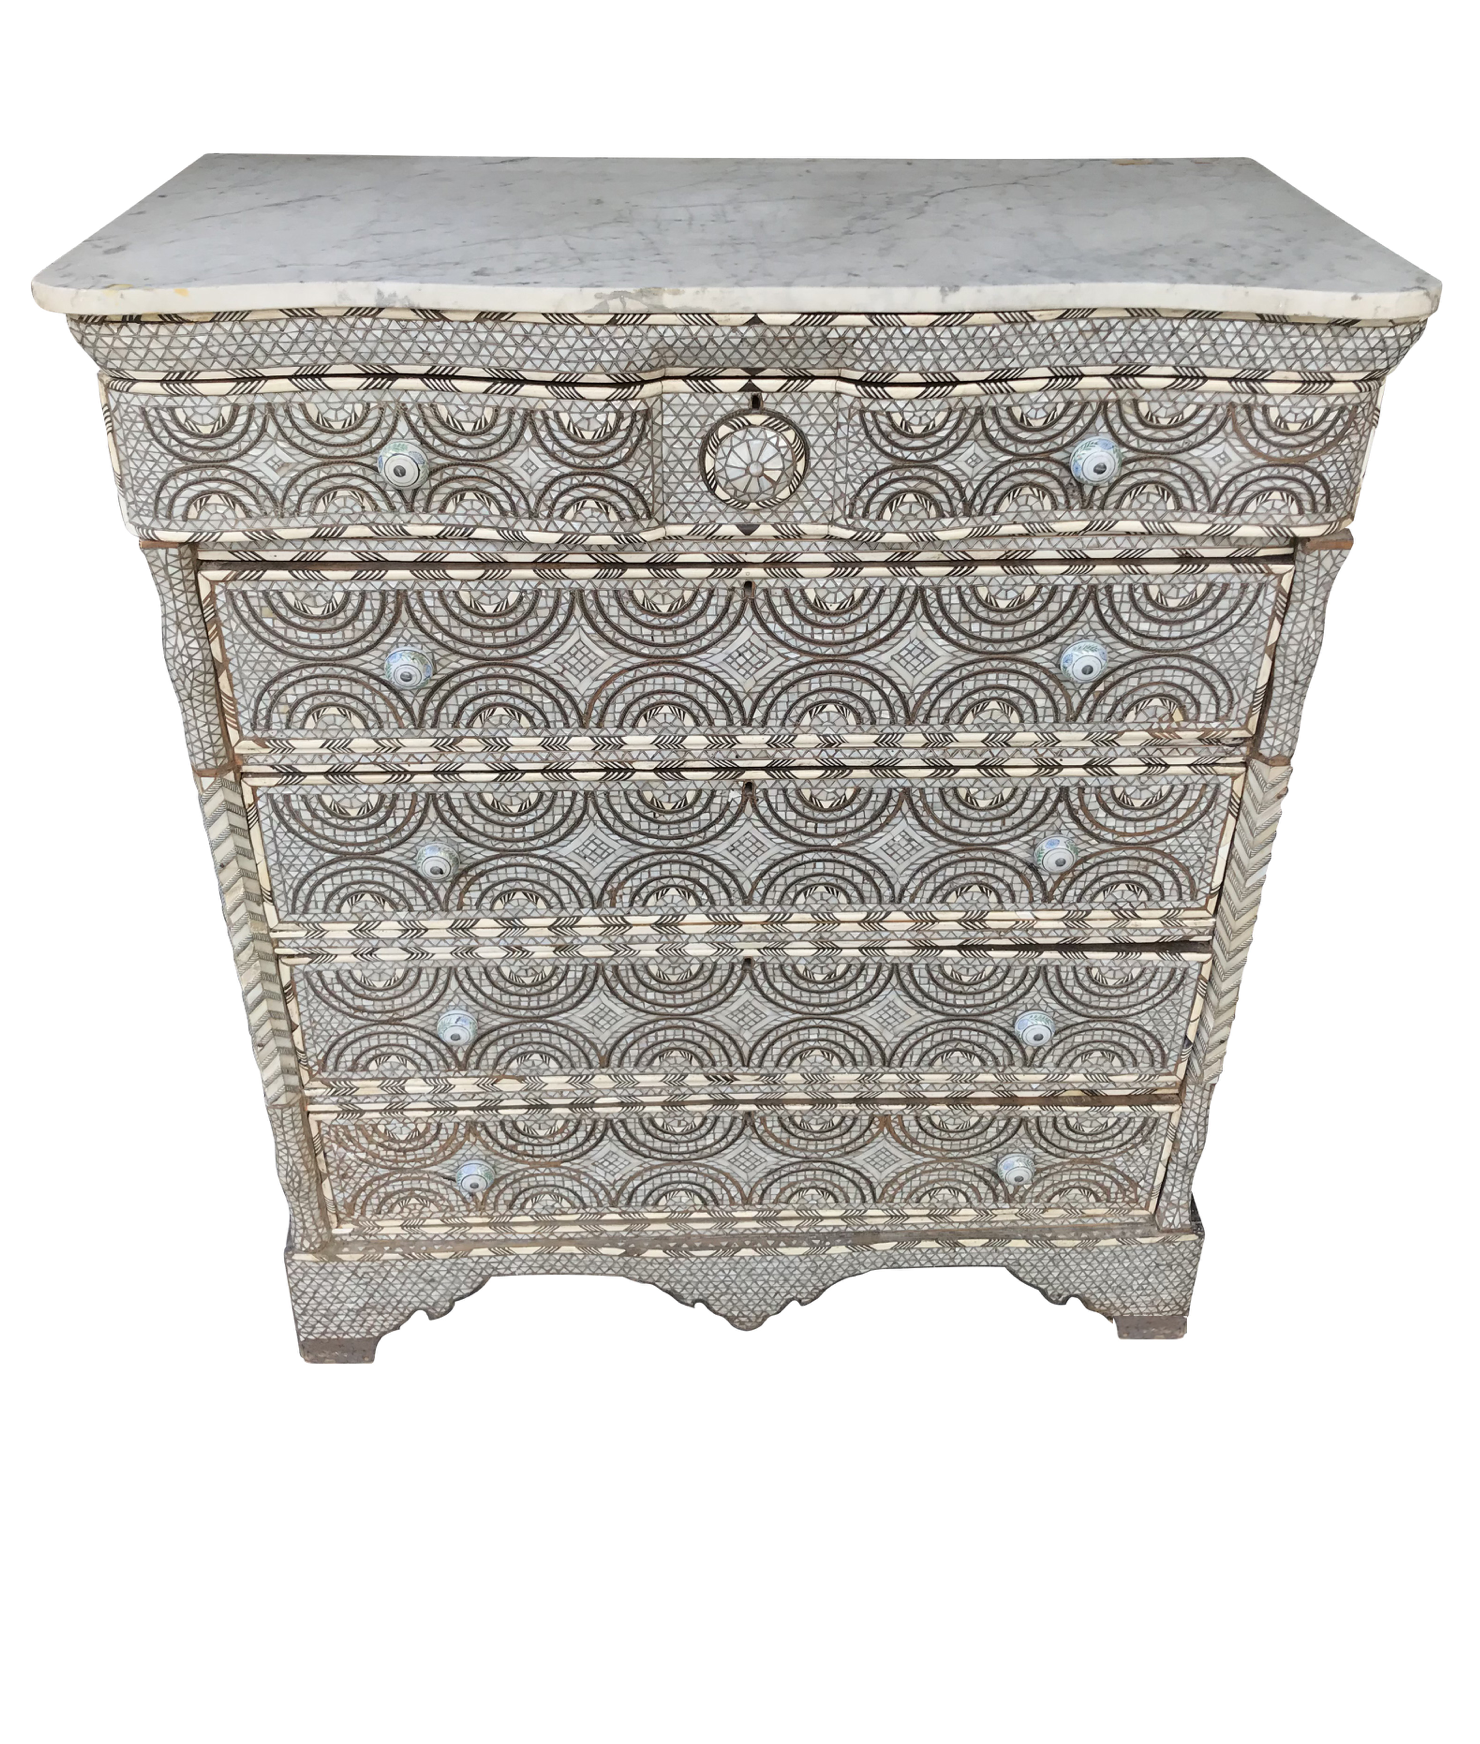 "EARLY 19TH CENTURY FIVE-DRAWER SYRIAN ""DAMASCUS"" COMMODE"